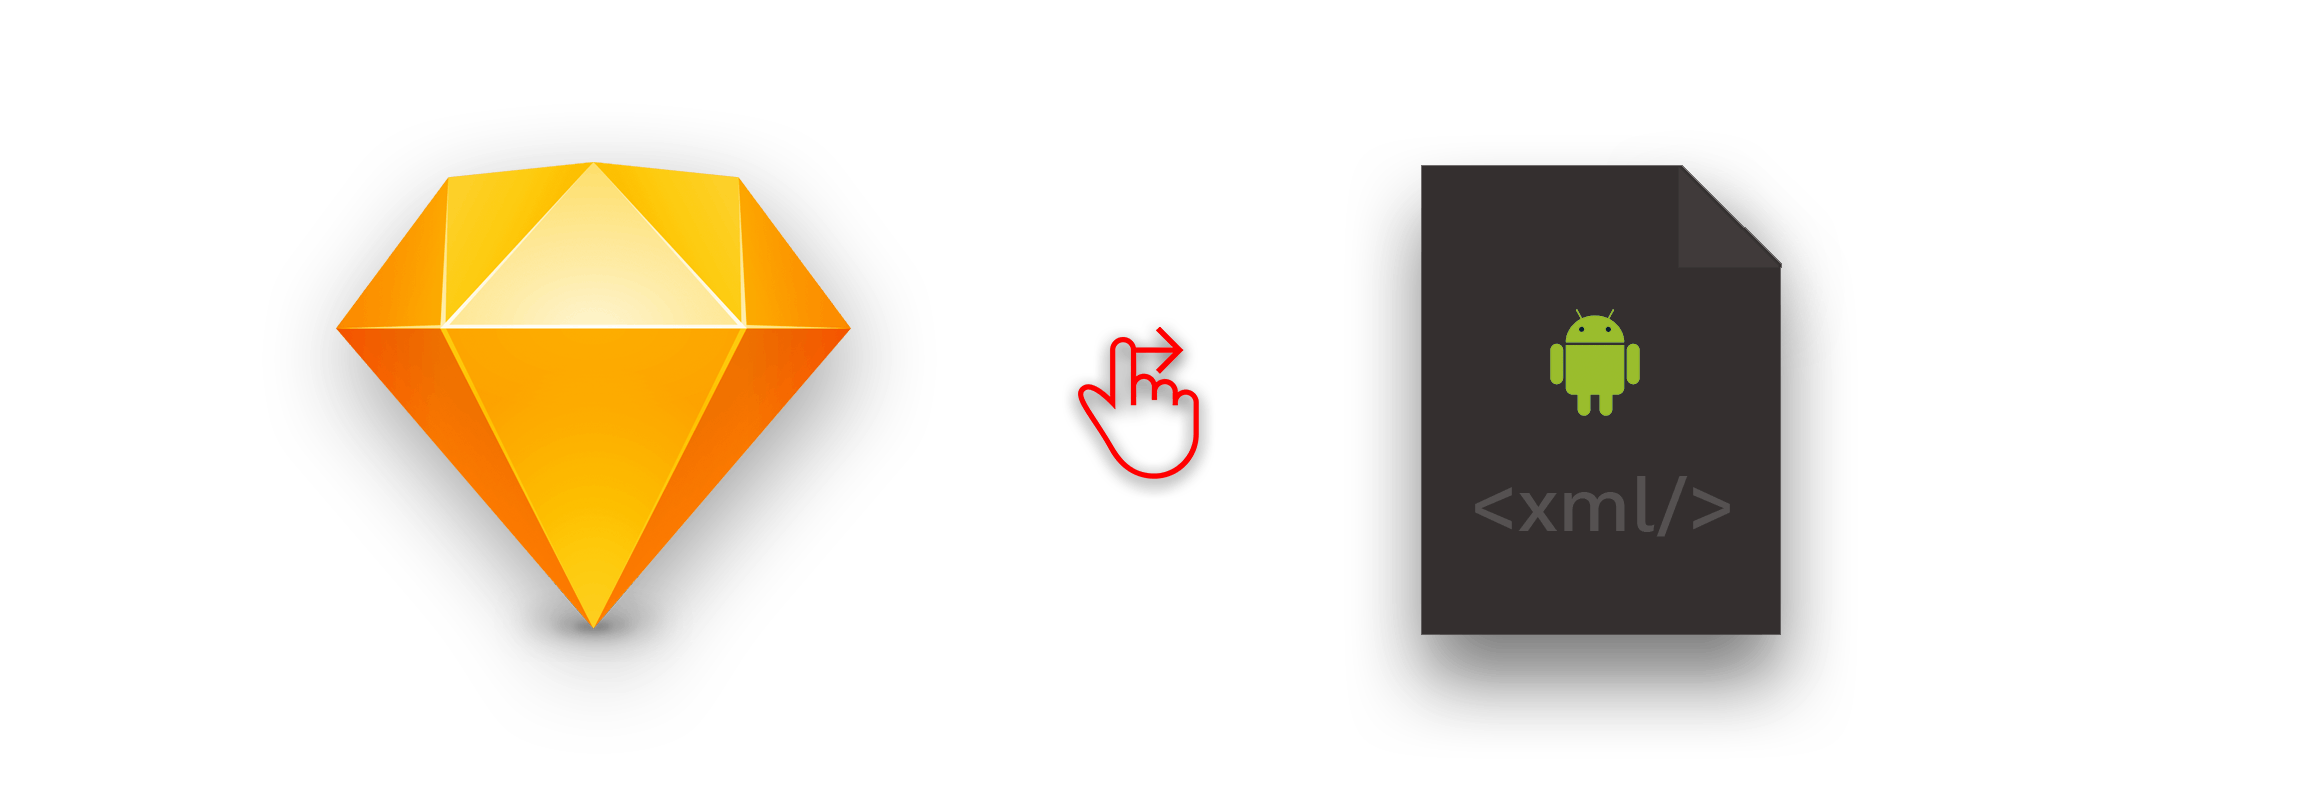 Sketch To Android Xml Conversion